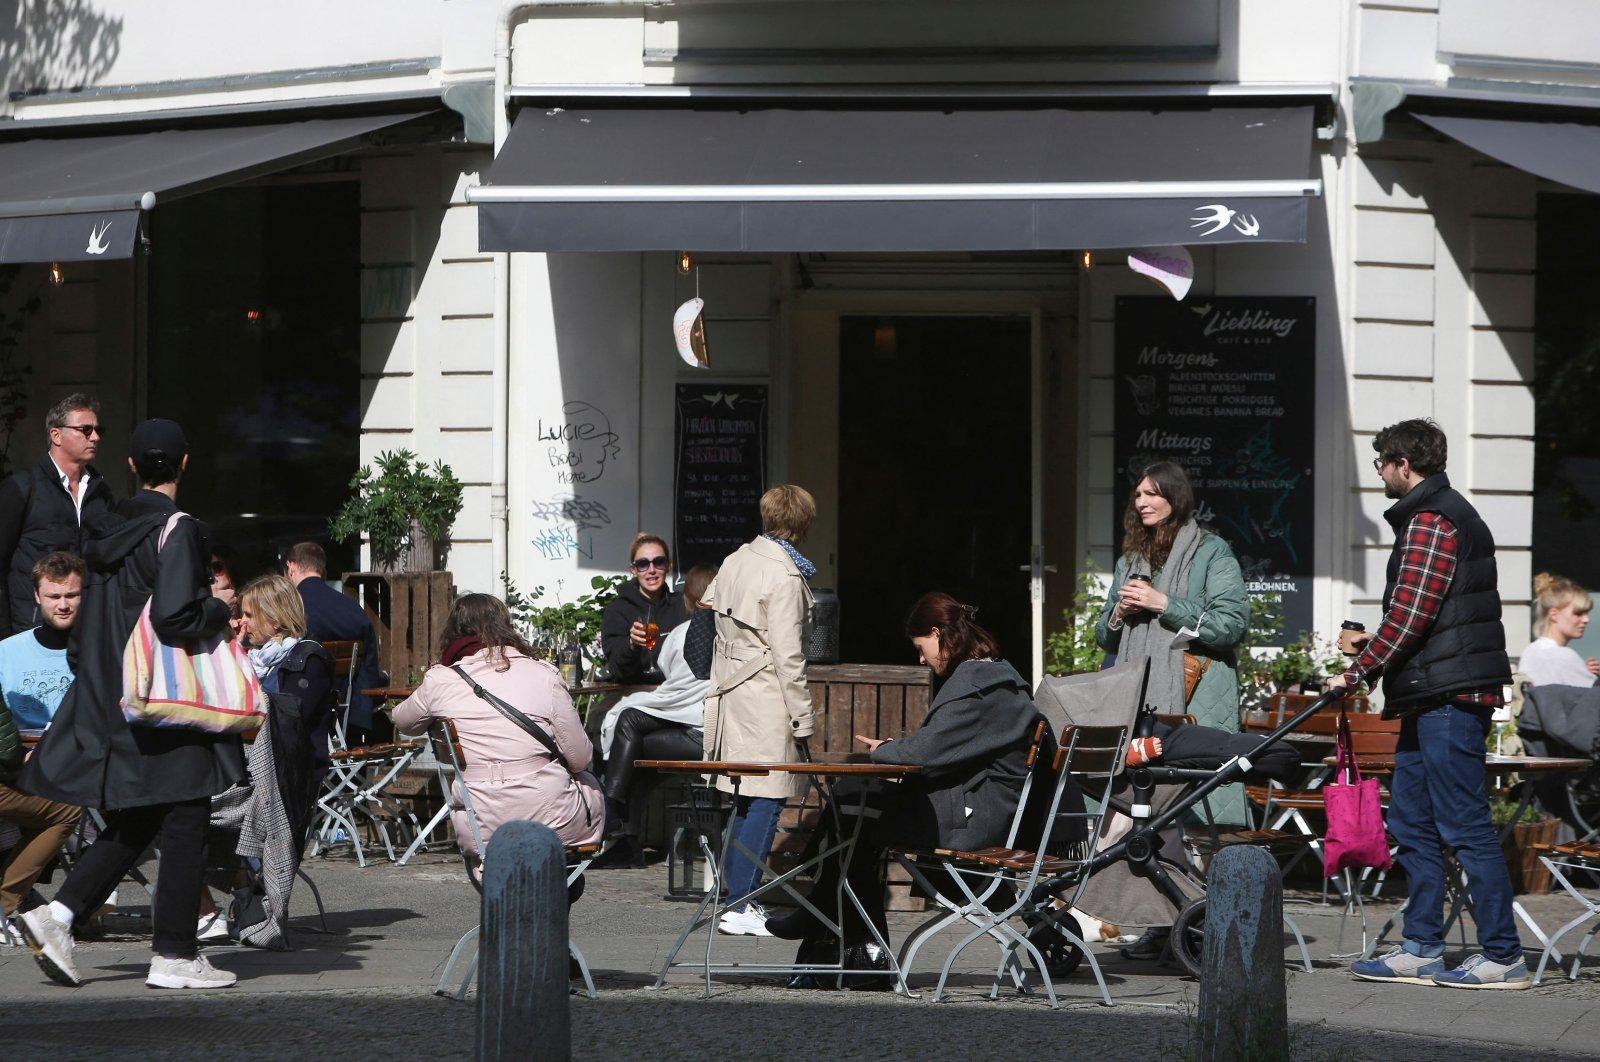 Guests sit outside a cafe after businesses were allowed to reopen outdoor seating amid the ongoing COVID-19 pandemic, in Berlin, Germany, May 22, 2021. (AFP Photo)